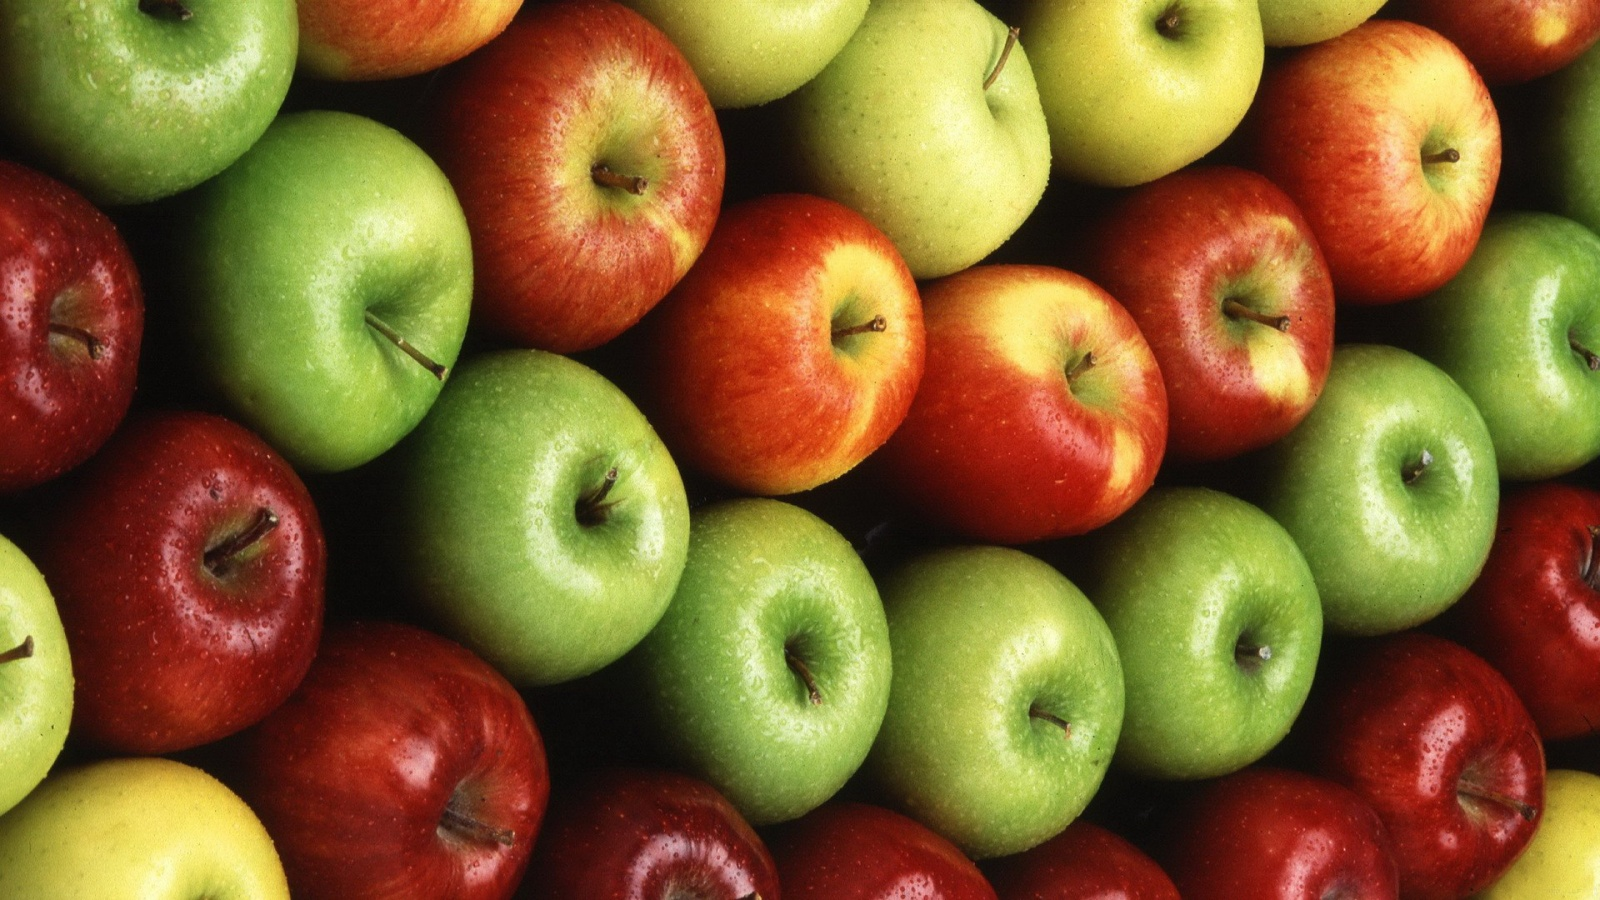 colorful apple fruit wallpapers 1600x900 522348